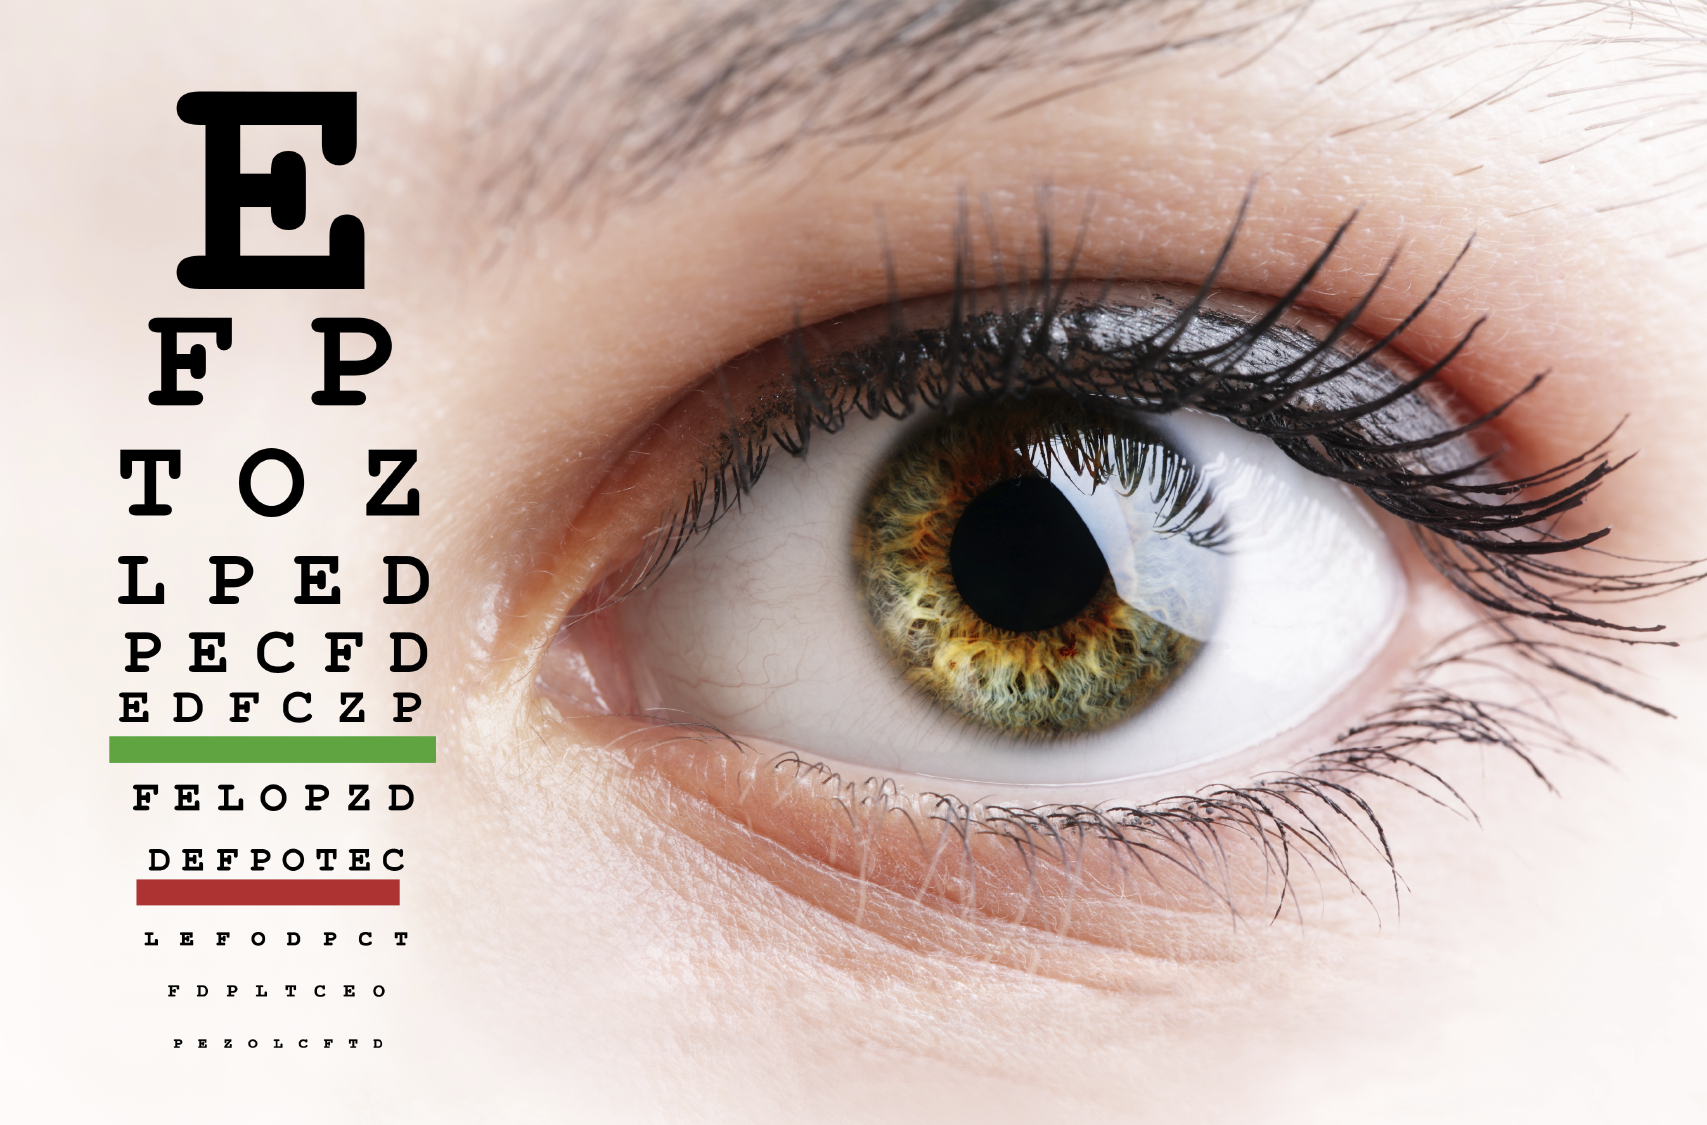 2020 vision how to convert 2020 based measure to diopters happy 2020 vision how to convert 2020 based measure to diopters happy eyesight geenschuldenfo Gallery